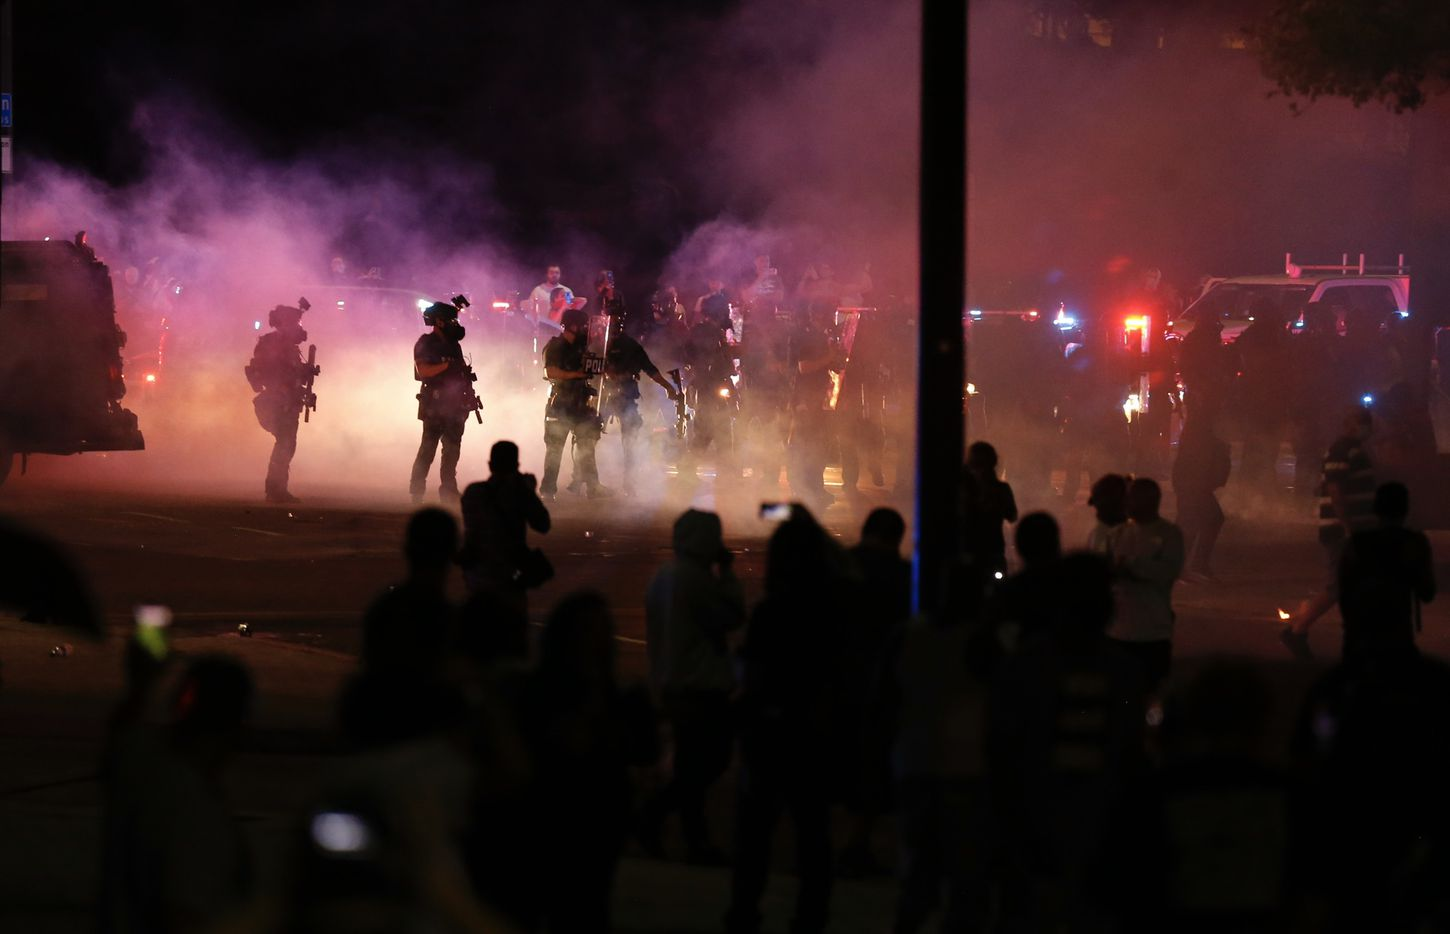 Protesters rally Friday during a demonstration against police brutality near downtown Dallas. The death of George Floyd police custody May 25 in Minneapolis has sparked protests nationwide. The officer who held his knee to Floyd's neck before his death been charged with murder and manslaughter earlier Friday.